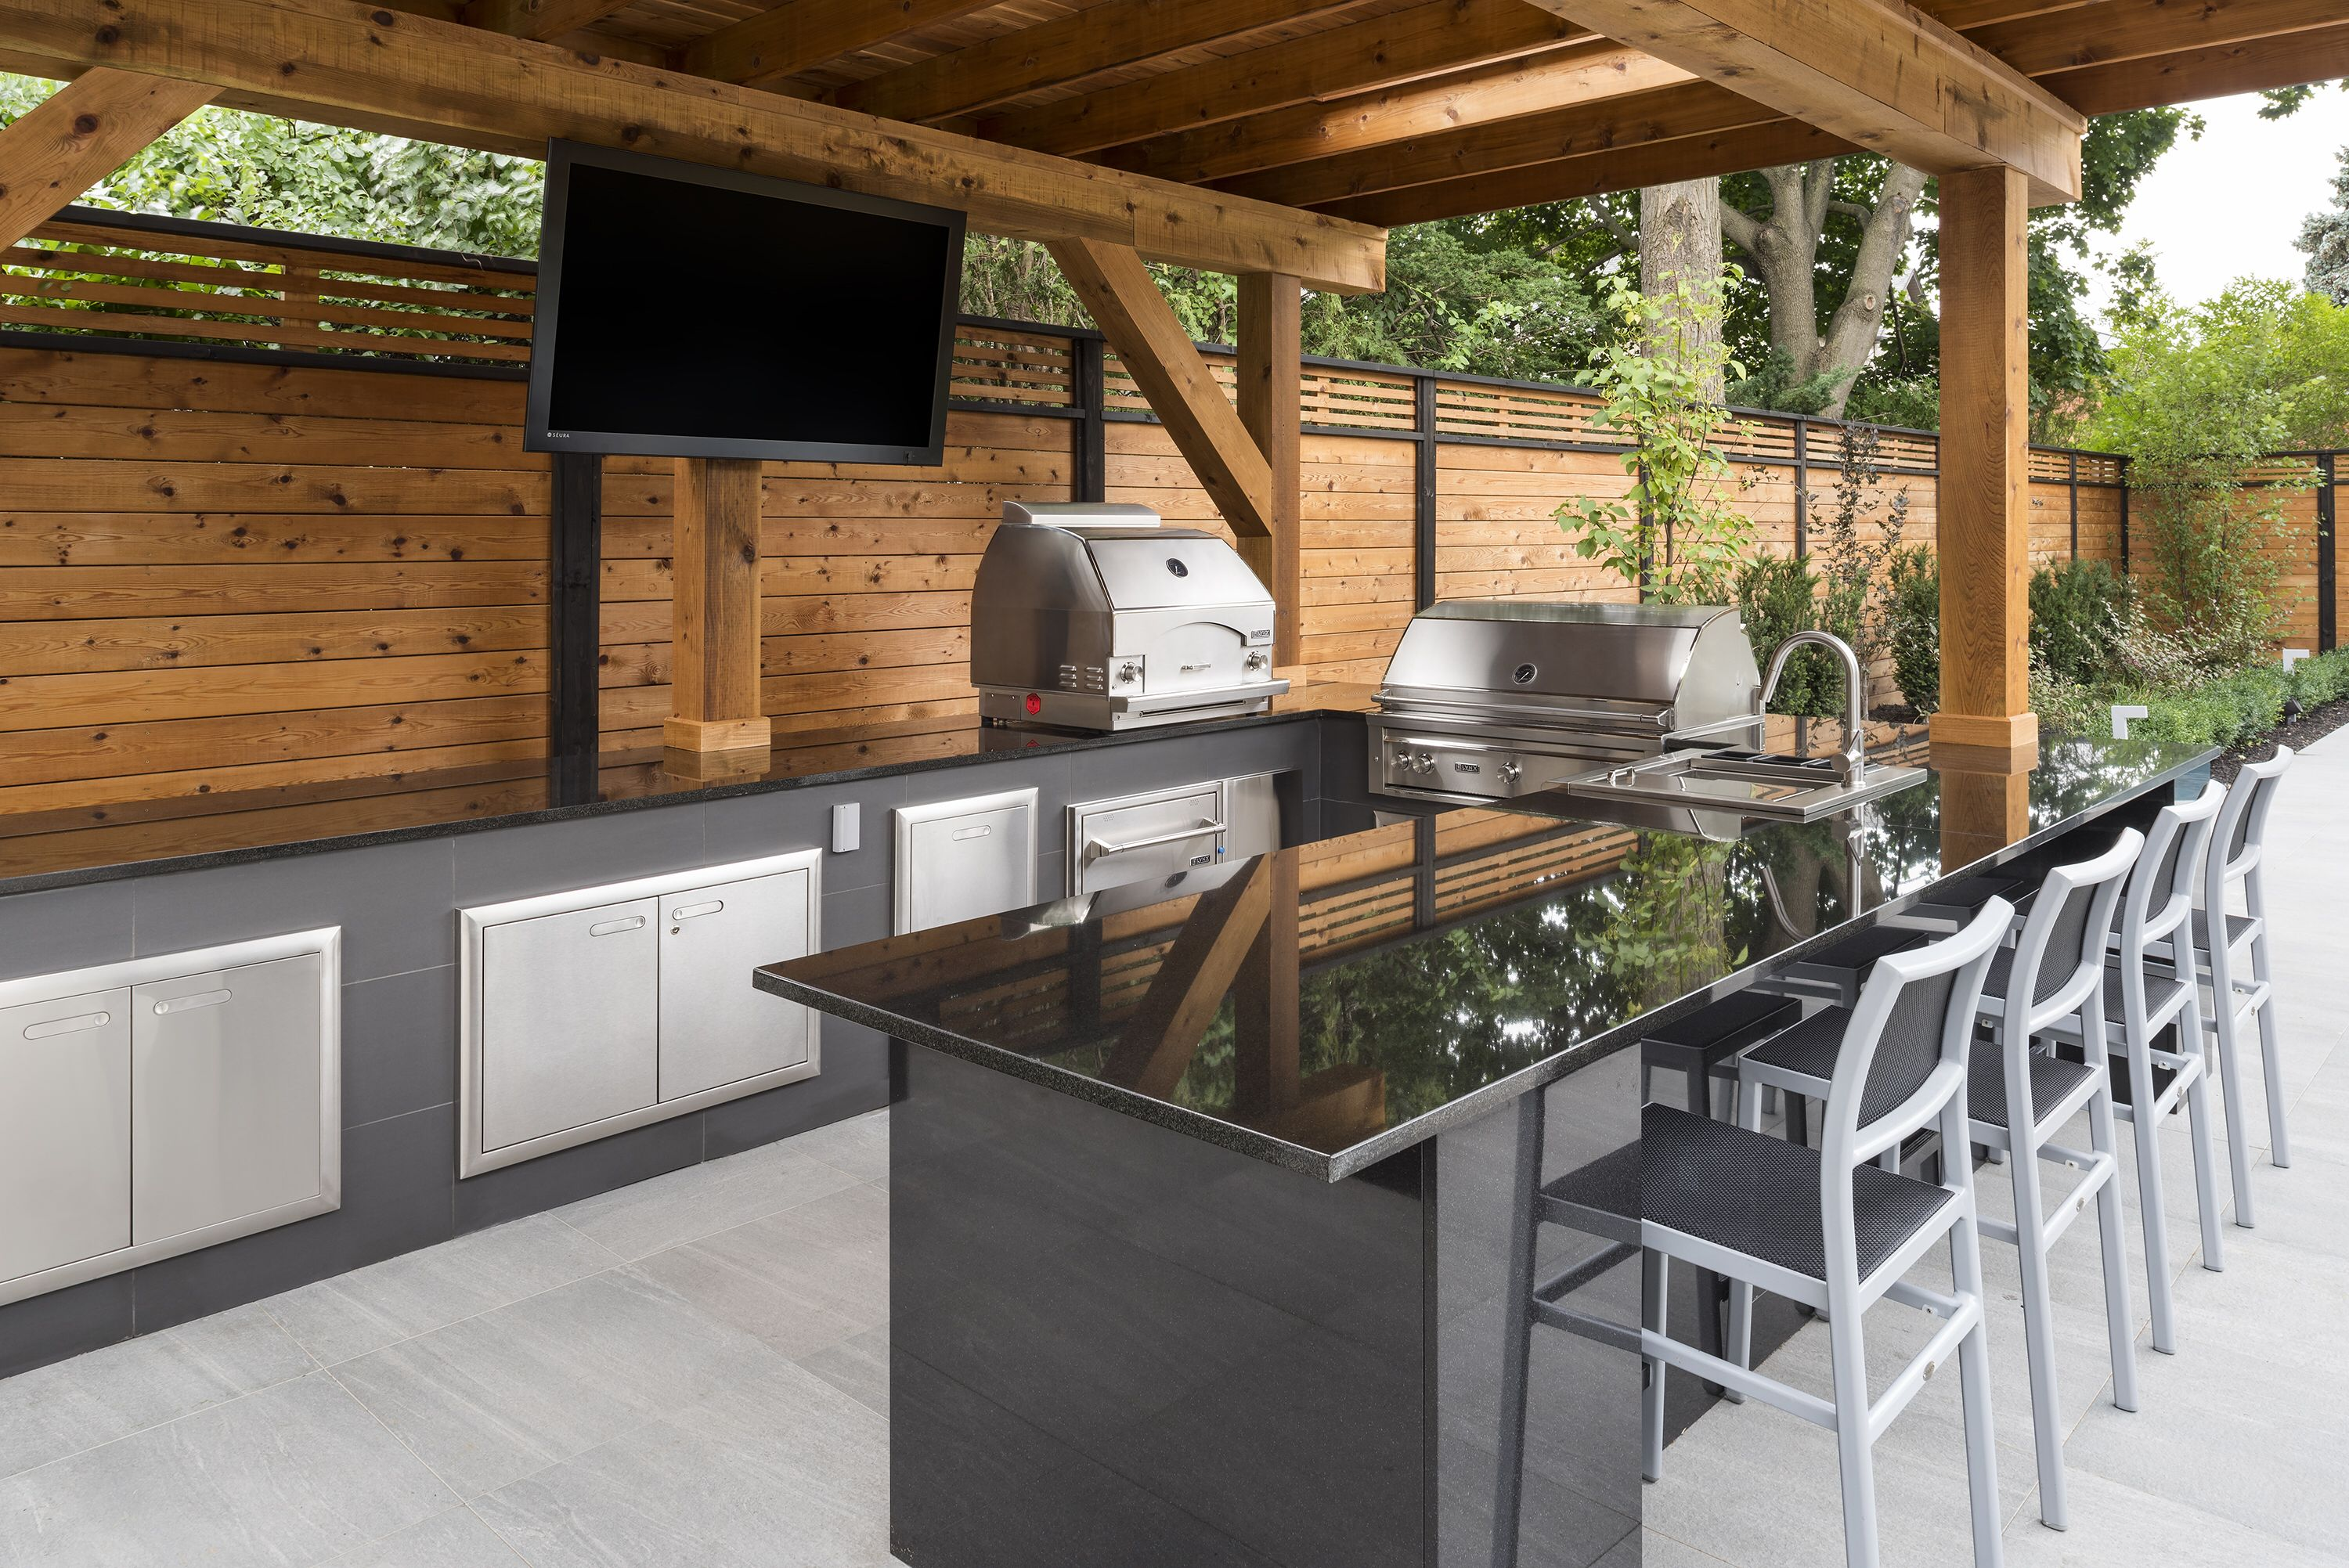 Modern Lynx outdoor kitchen  Covered outdoor kitchens, Outdoor